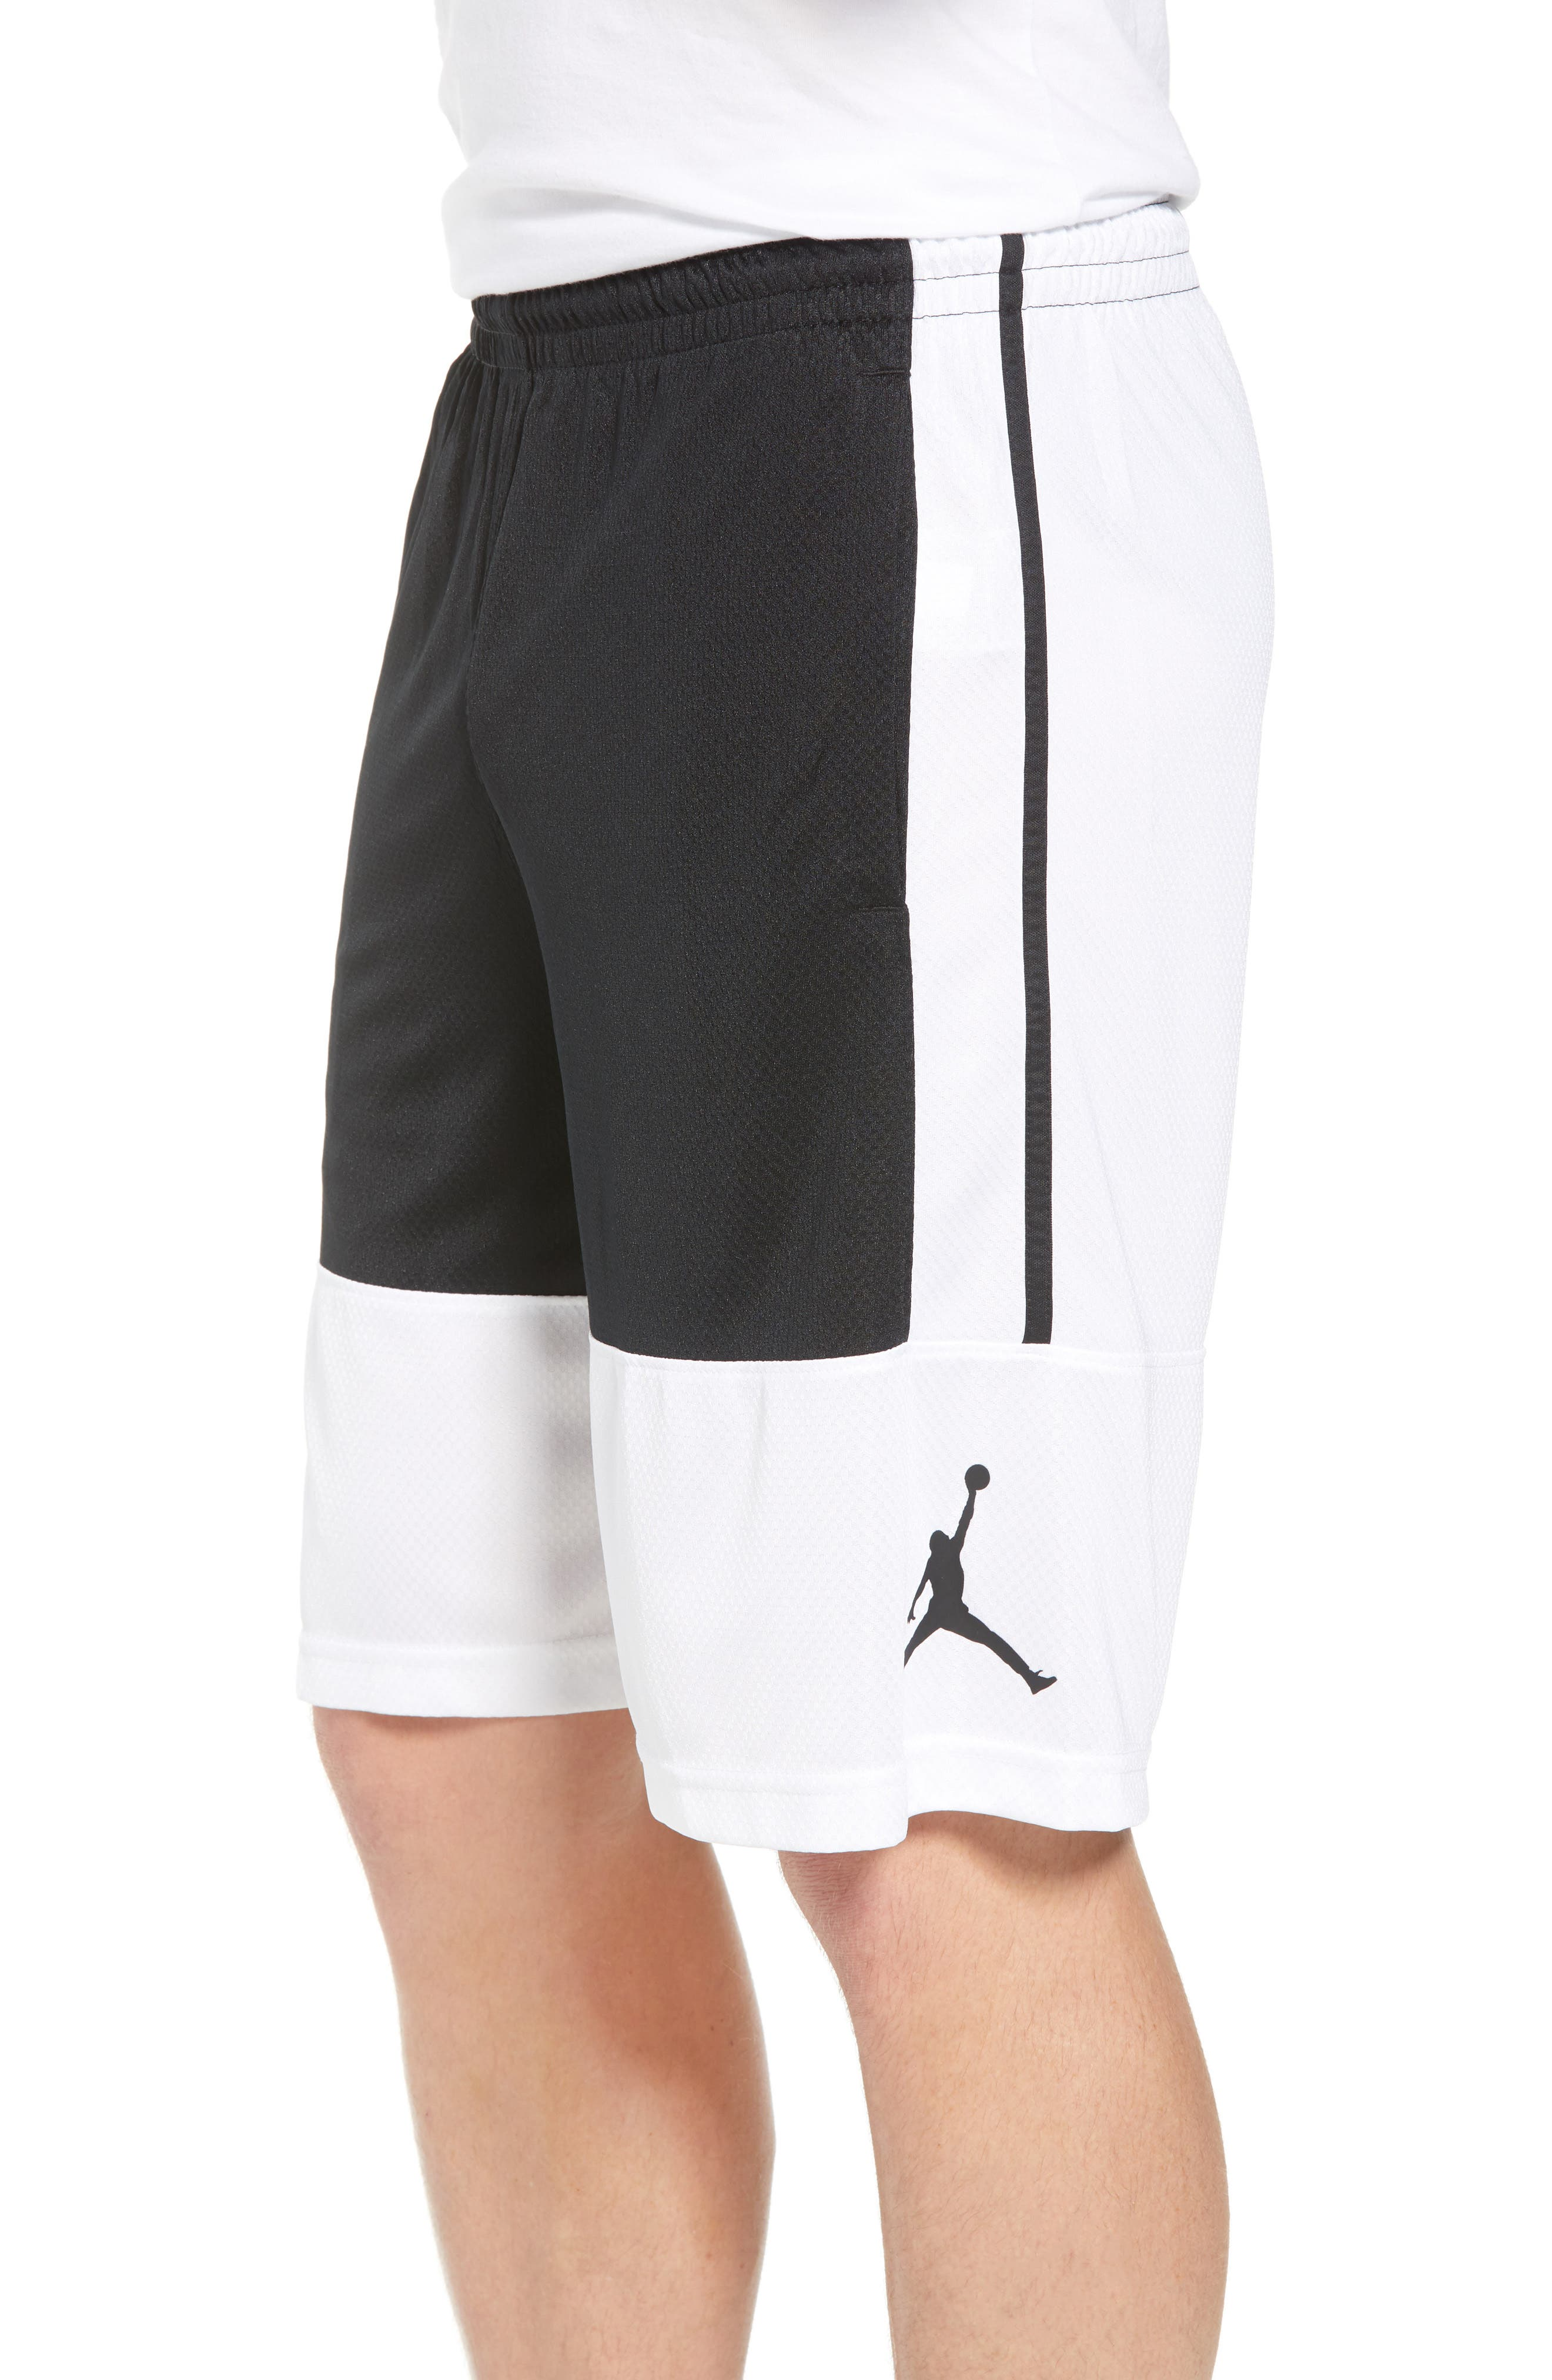 Rise Shorts,                             Alternate thumbnail 3, color,                             WHITE/ BLACK/ BLACK